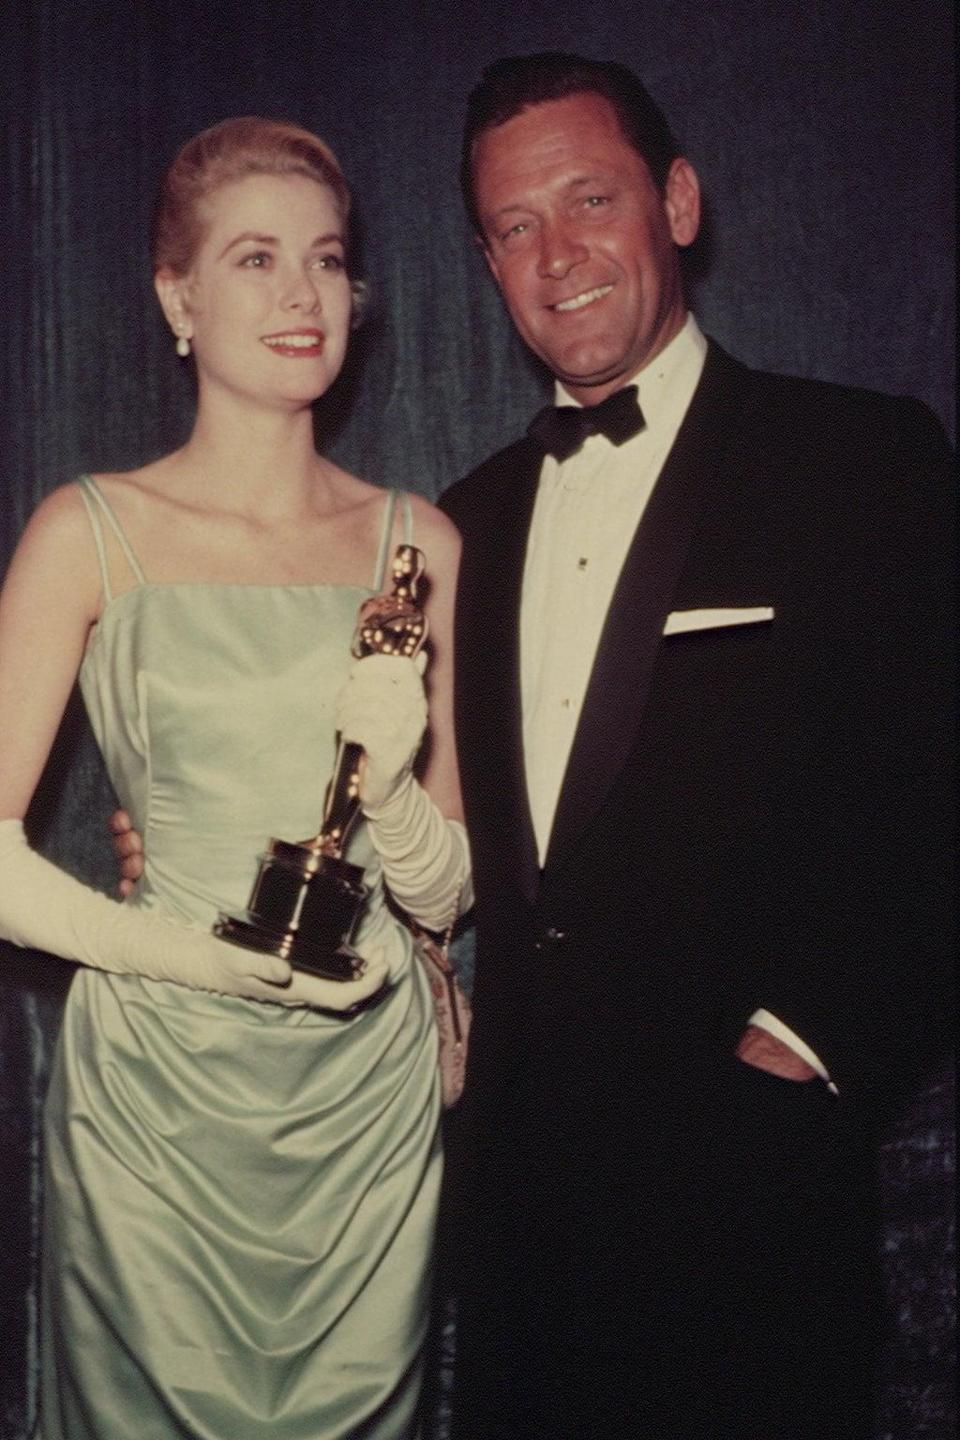 <p>Grace Kelly celebrated her award for best actress for the movie <strong>The Country Girl</strong> in a stunning cinched dress. </p>